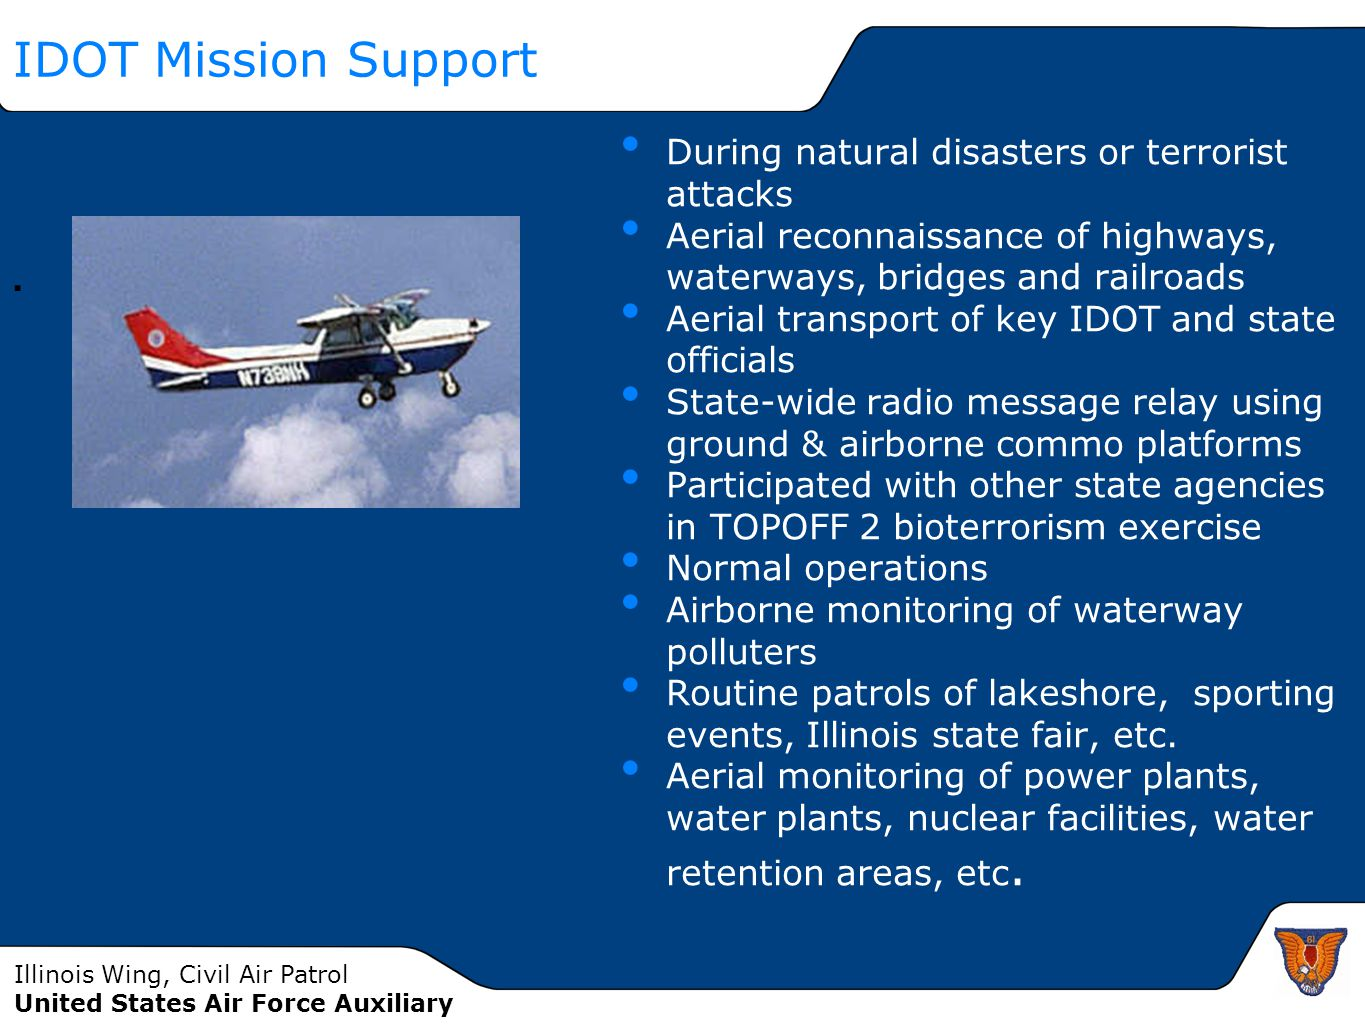 . IDOT Mission Support During natural disasters or terrorist attacks